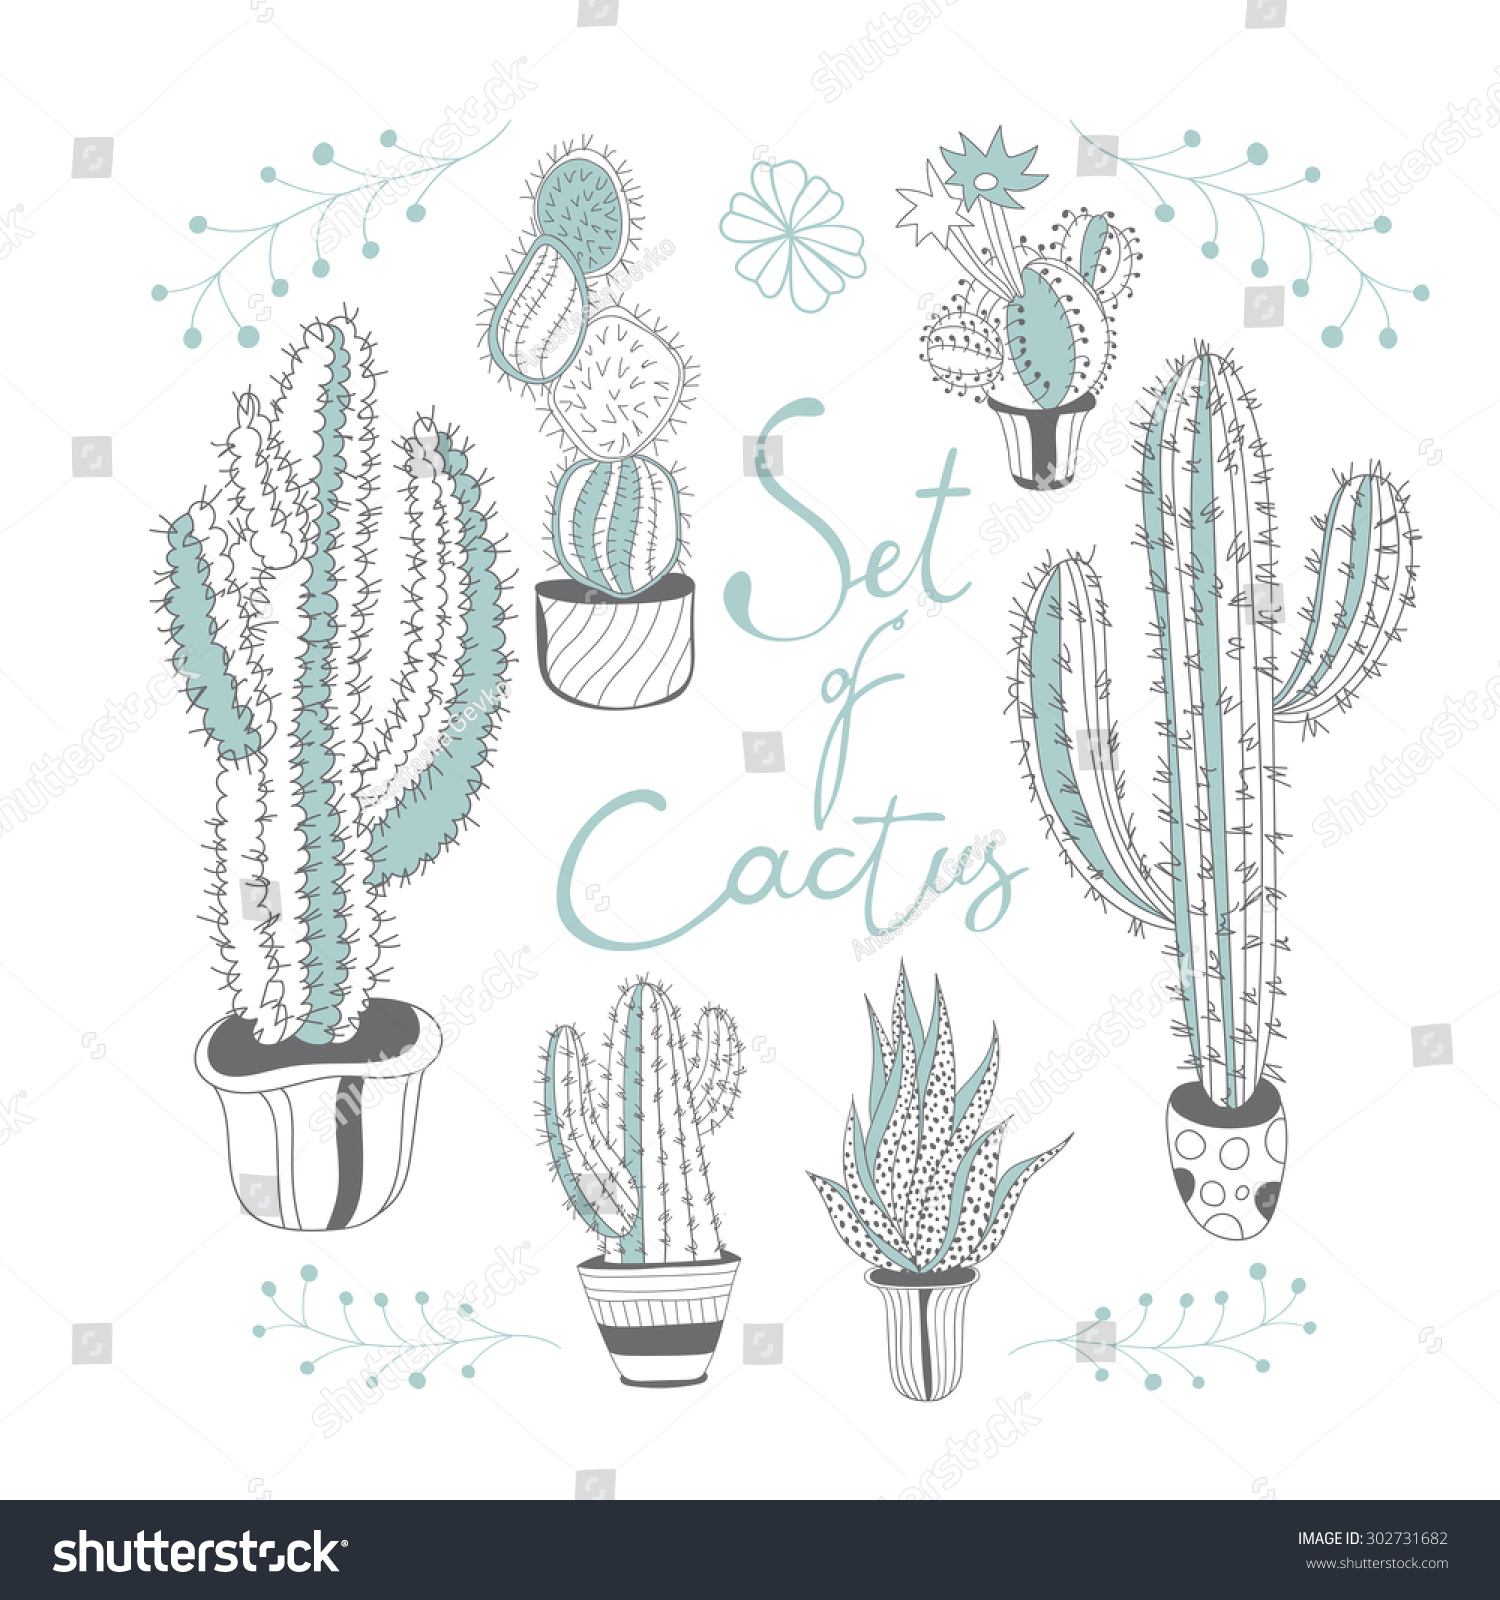 Line Drawing Cactus : Set cactus cacti line drawing stock vector